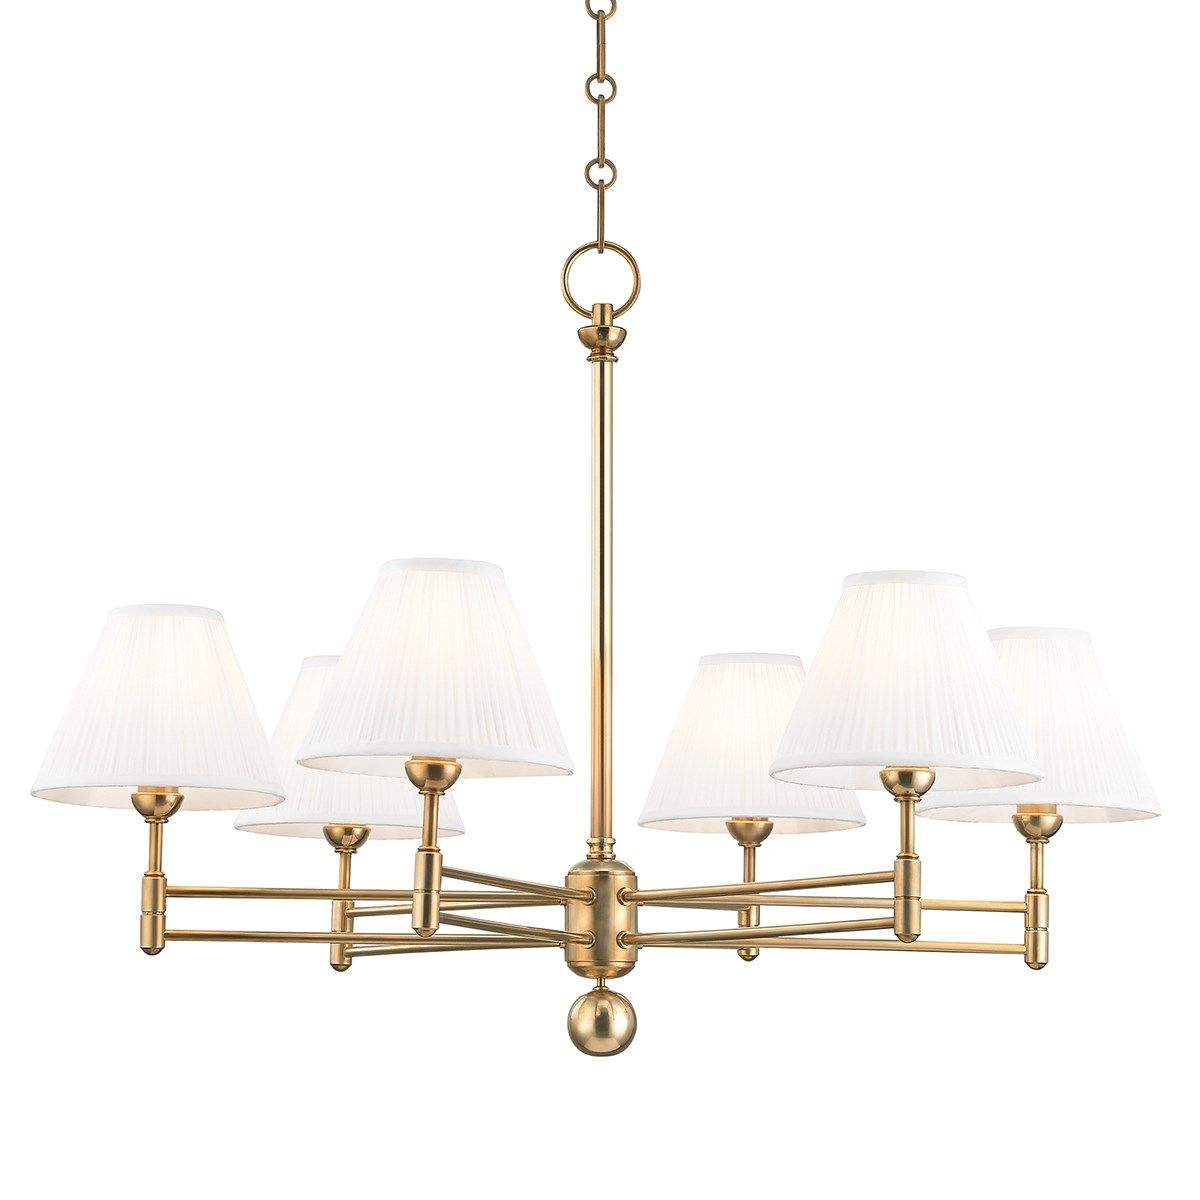 Mds105 Agb Chandelier Lighting Hudson Valley Lighting Traditional Chandelier